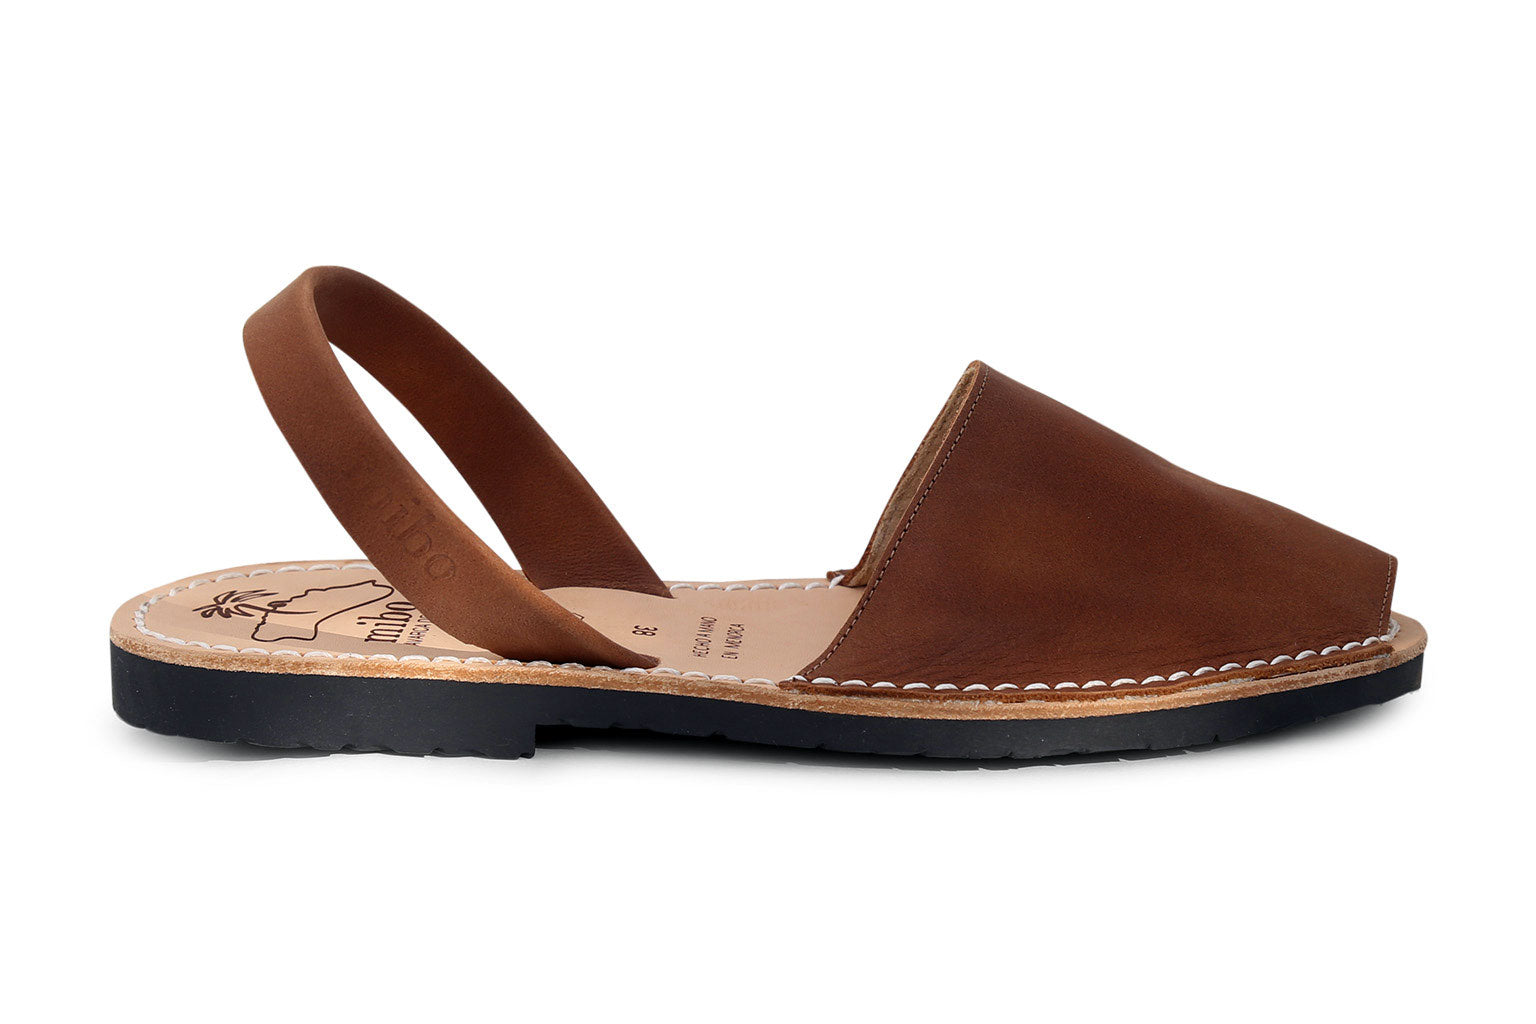 f65ca5af50f6 Mibo Avarcas Brown Leather Menorcan Sandals